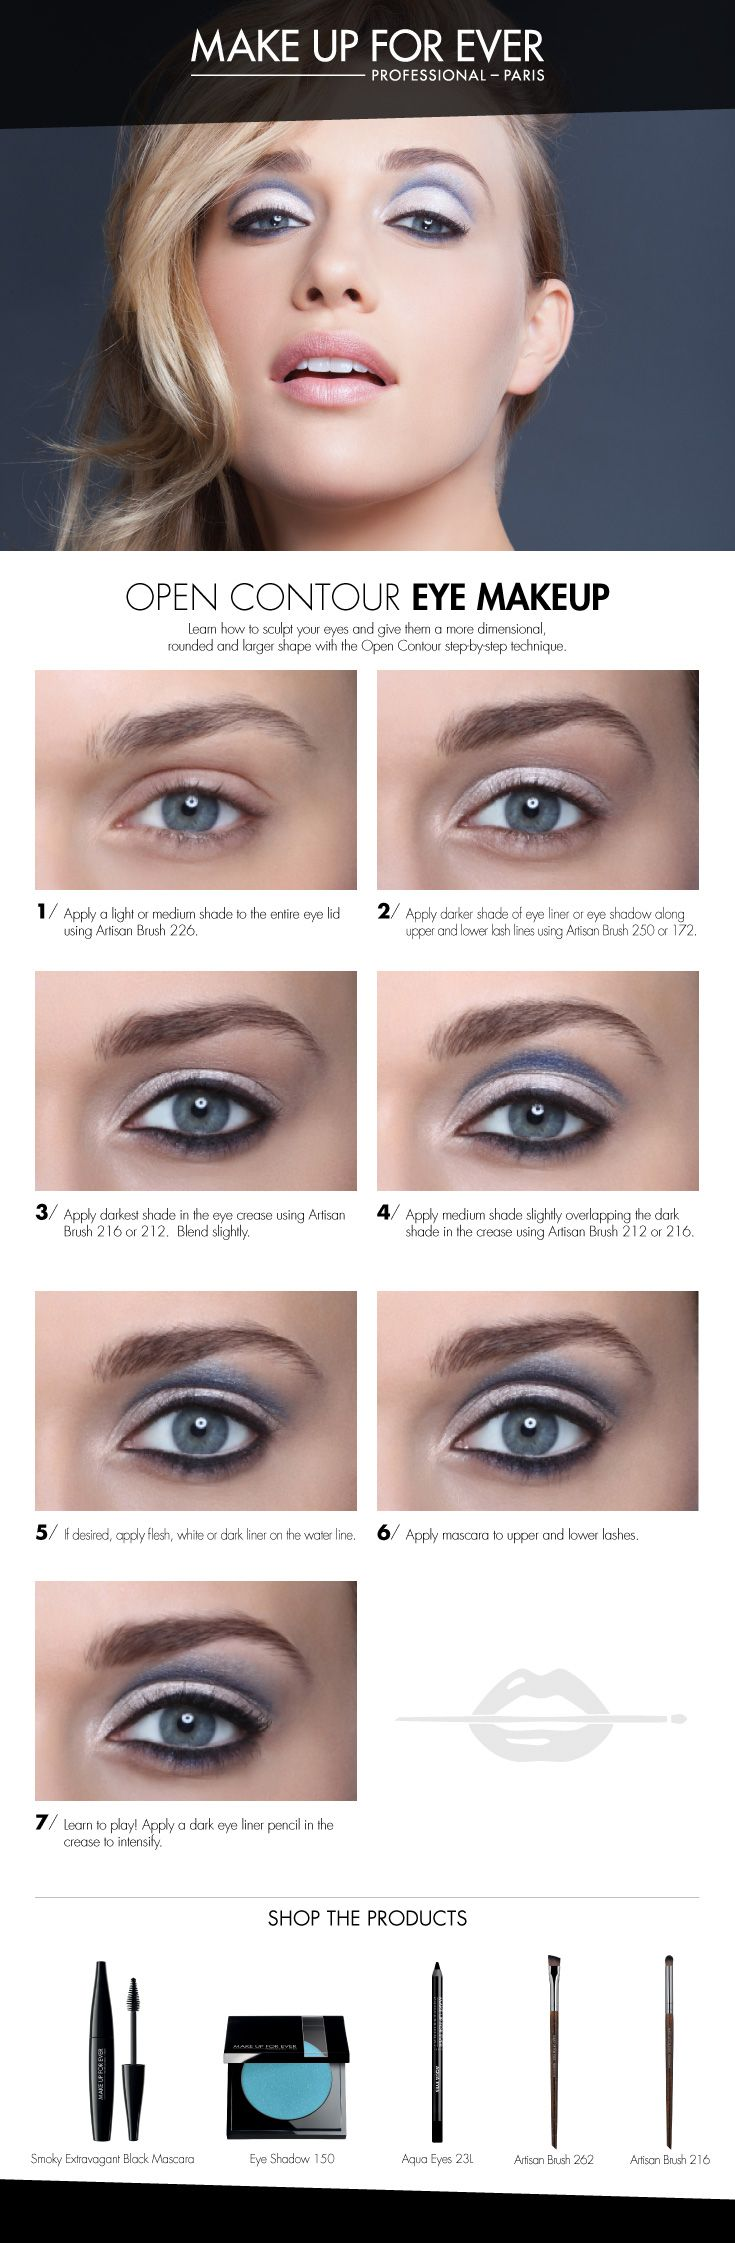 54 best sephora x make up for ever images on pinterest mud open contour eye makeup gives a sculpted effect deepens and defines the crease and ccuart Gallery